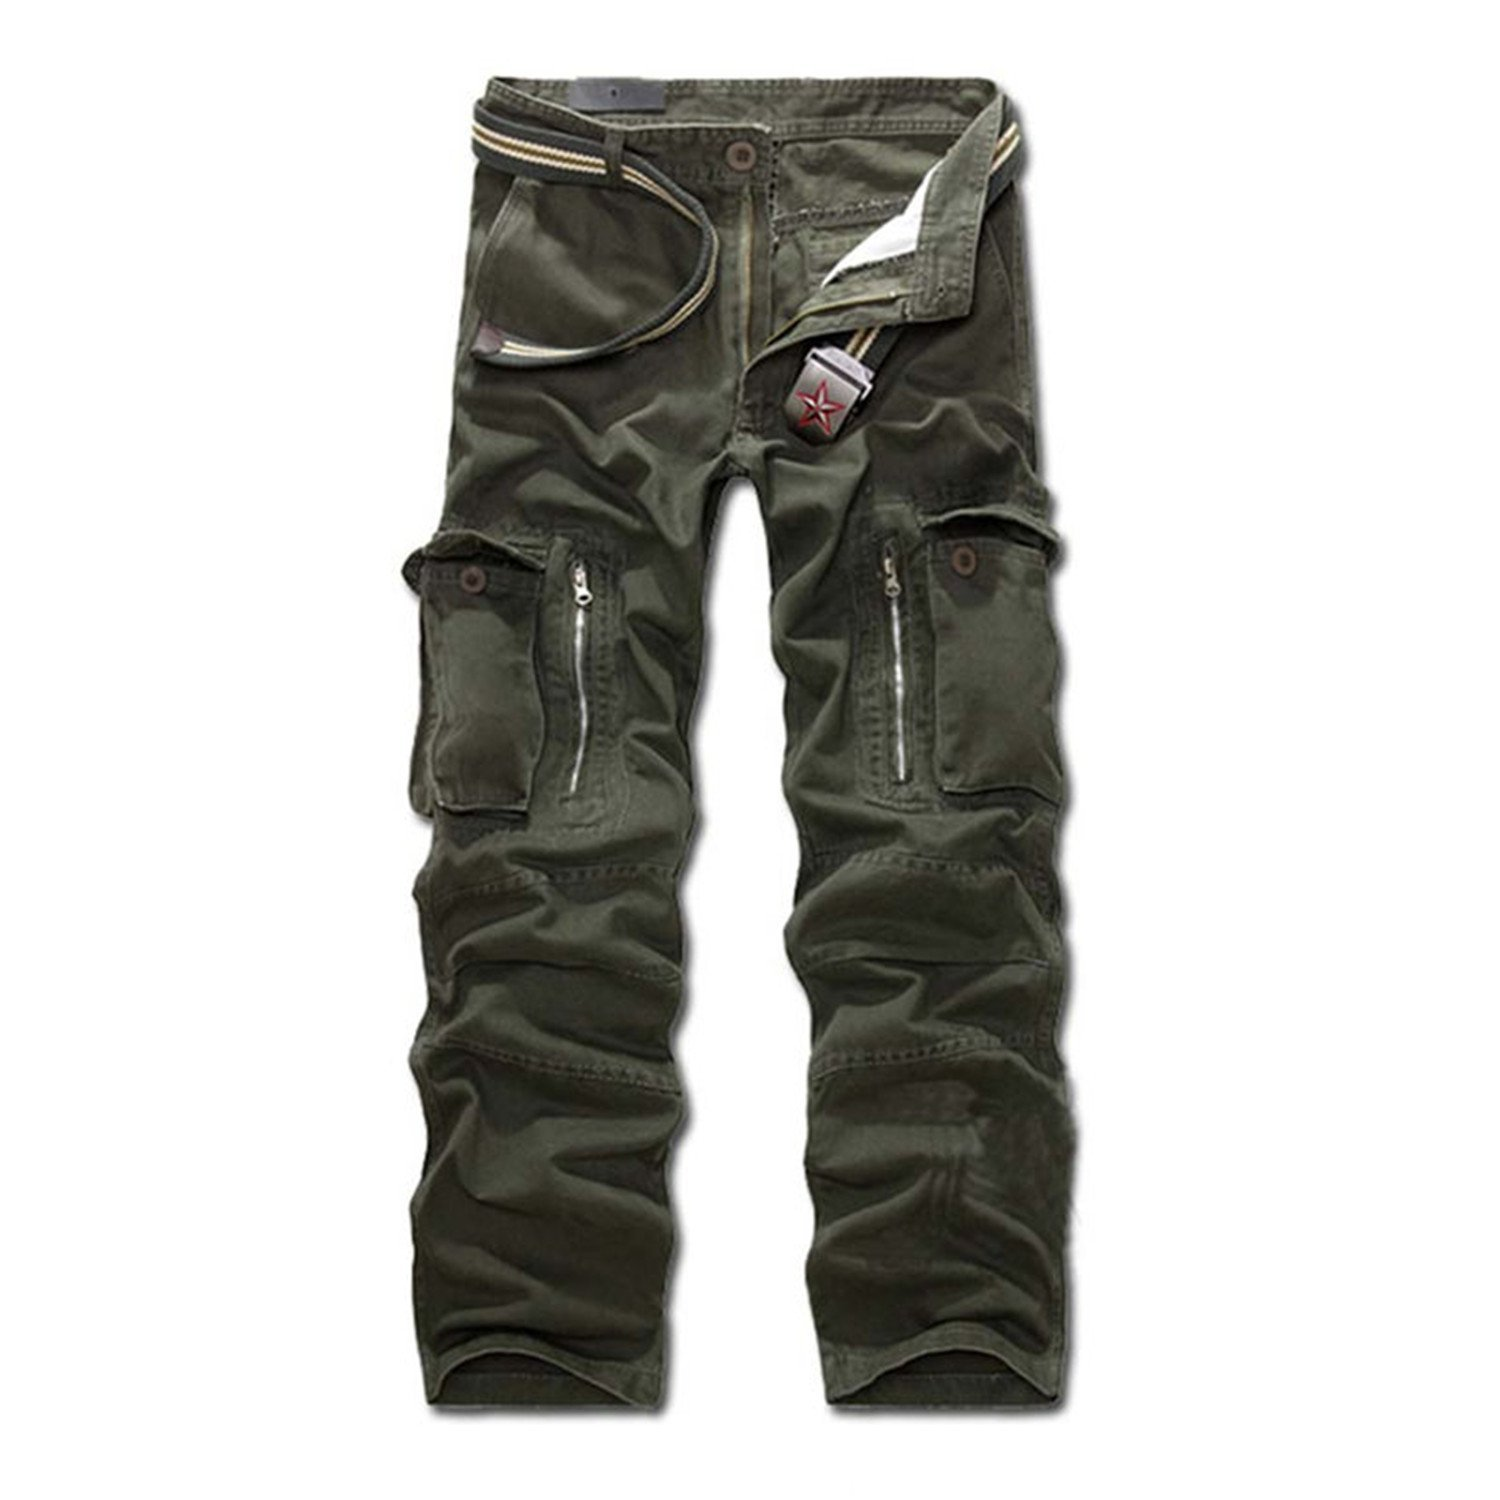 Toping Fine Pants Fashion Mens Slacks Trousers Military Army Combat Camo Work Pants Overalls 249 Army Green31 by Toping Fine Pants (Image #2)